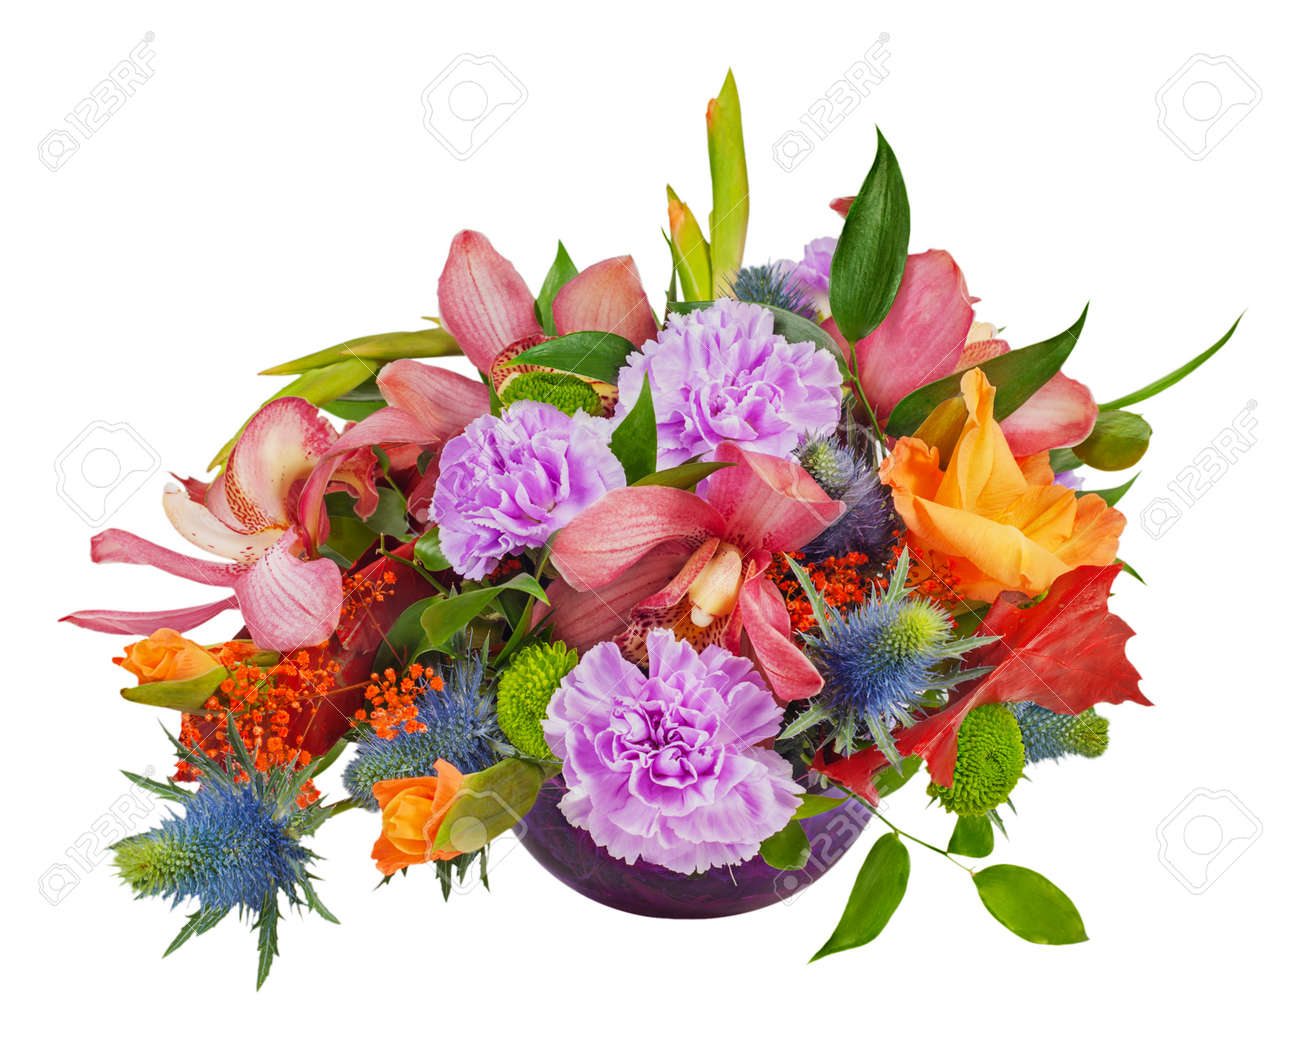 Floral bouquet of orchids gladioluses and carnations arrangement floral bouquet of orchids gladioluses and carnations arrangement centerpiece in blue glass vase isolated on reviewsmspy